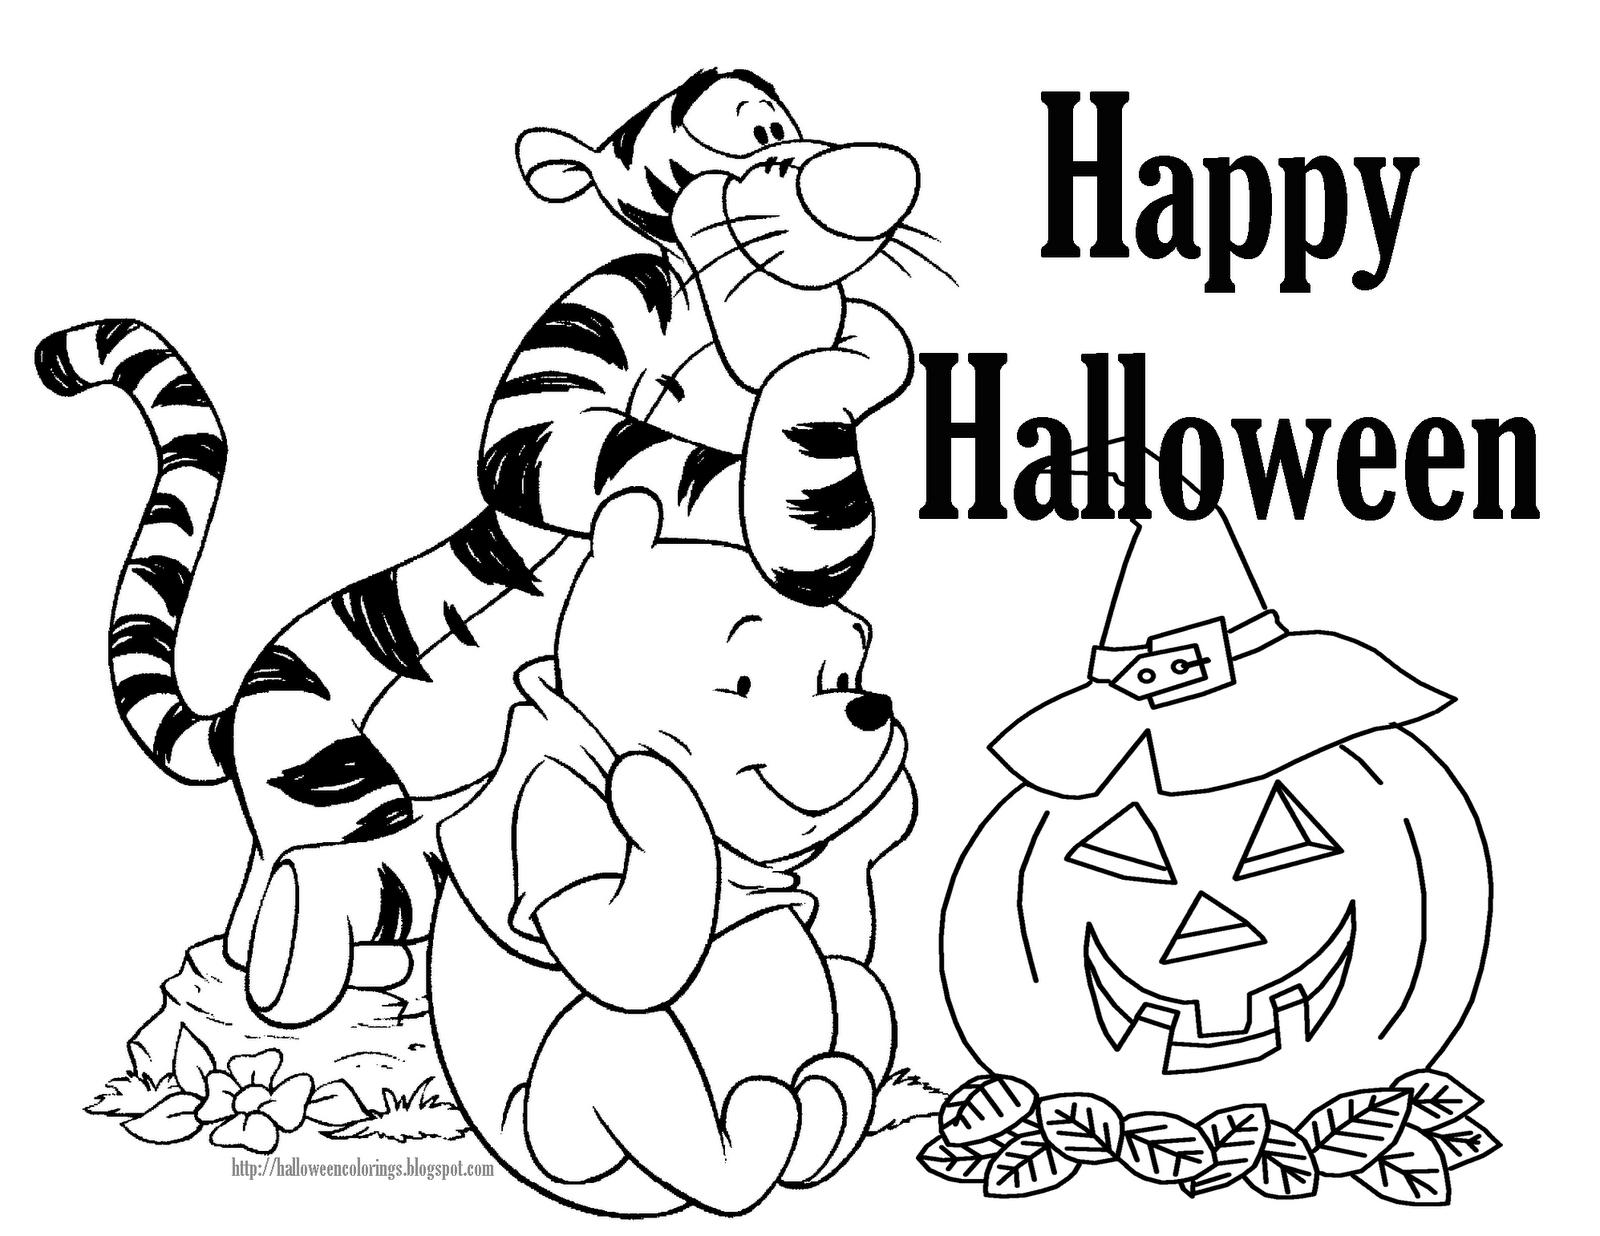 colouring pages for halloween free printable transmissionpress printable halloween coloring pages for colouring halloween pages free printable